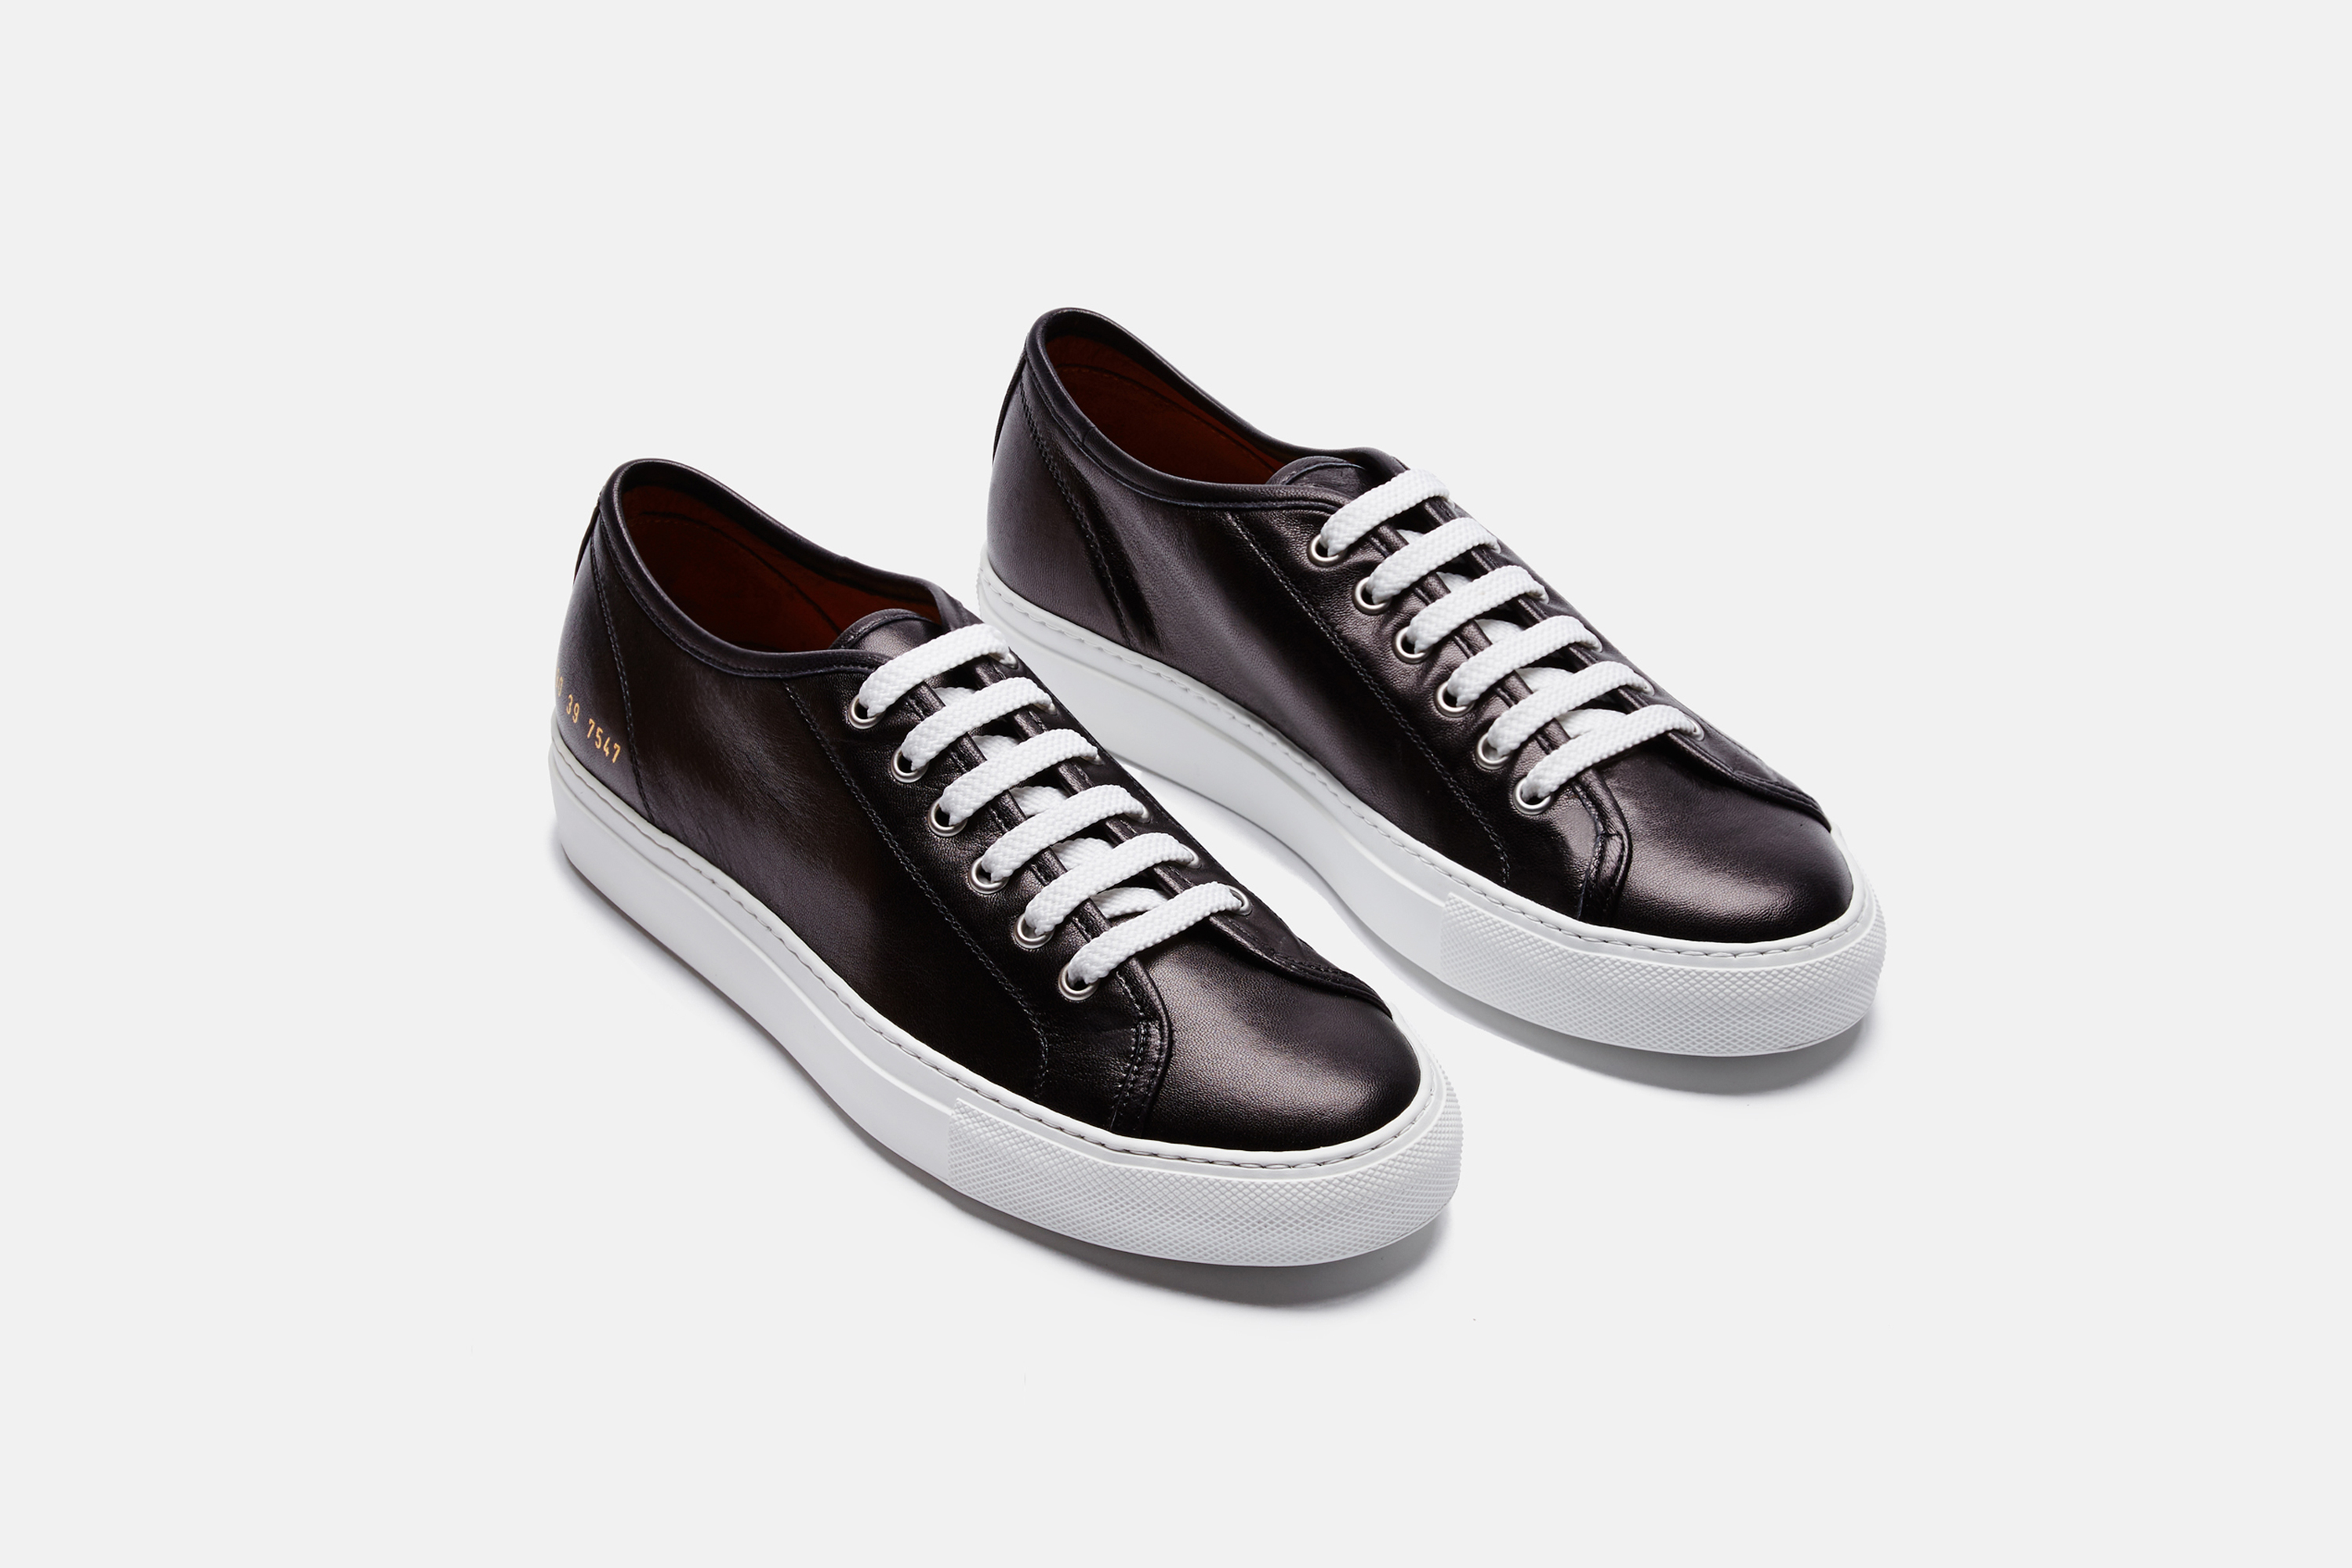 Tournament Leather Sneakers - Black Common Projects Quality From China Cheap Shopping 100% Authentic Ost Release Dates For Cheap For Sale XnW7xMA